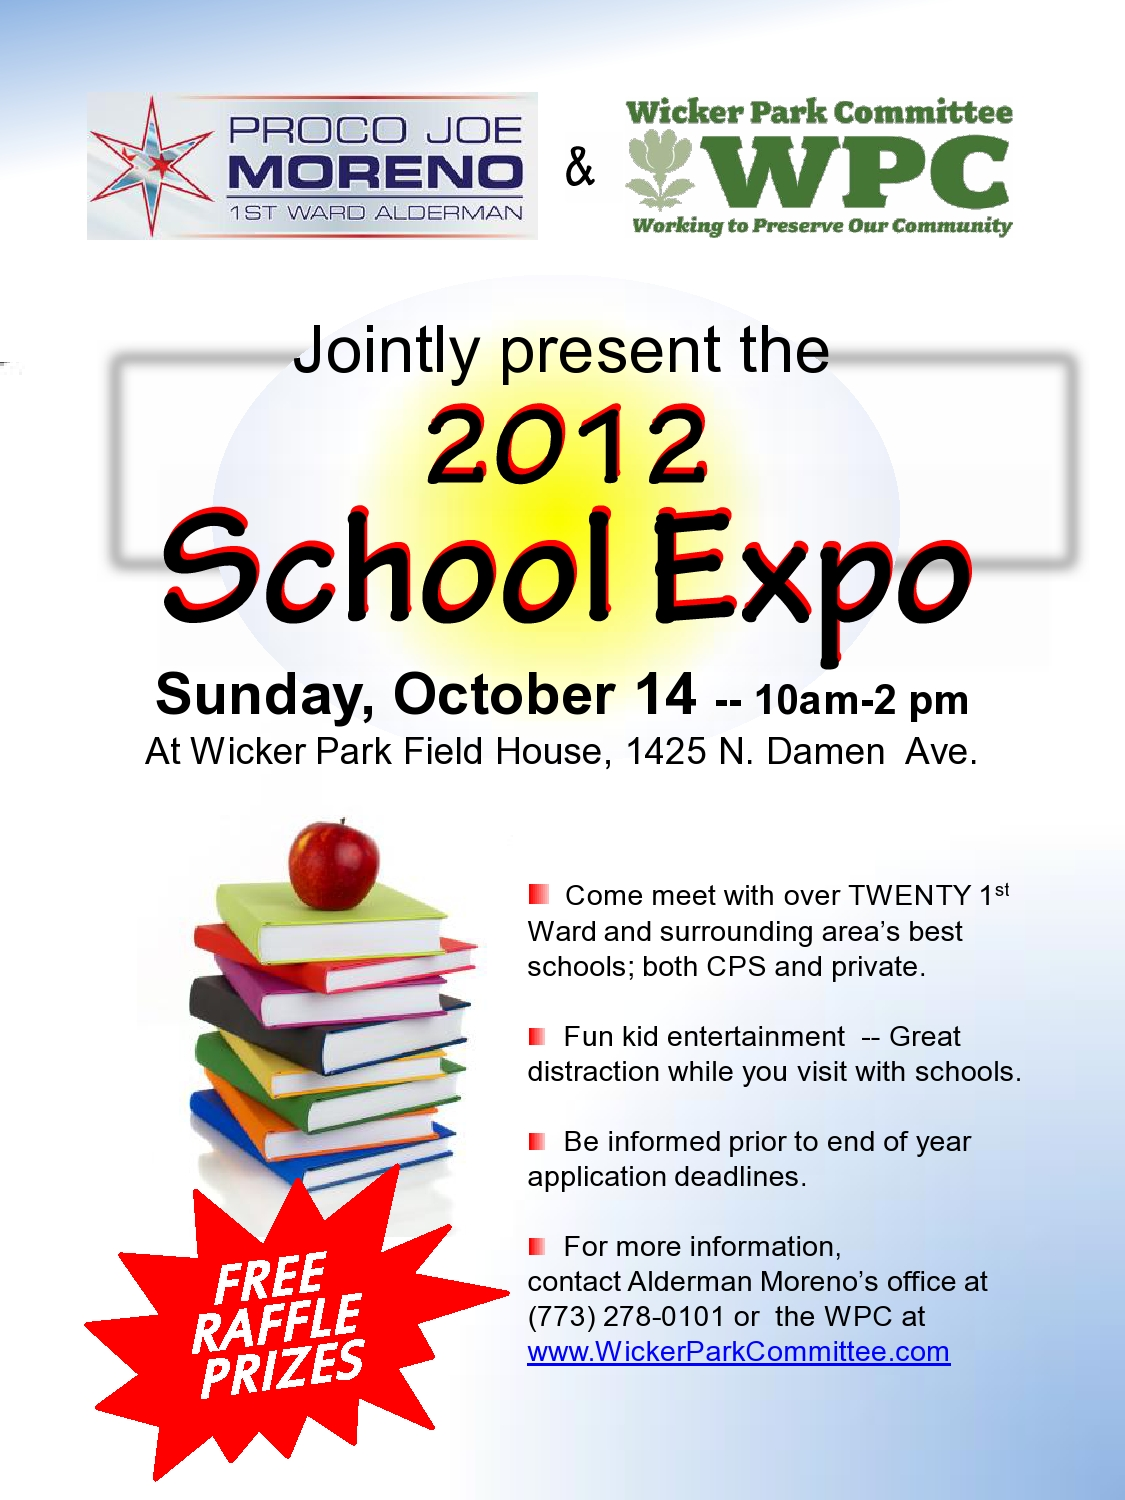 IMAGE: School Expo Flyer